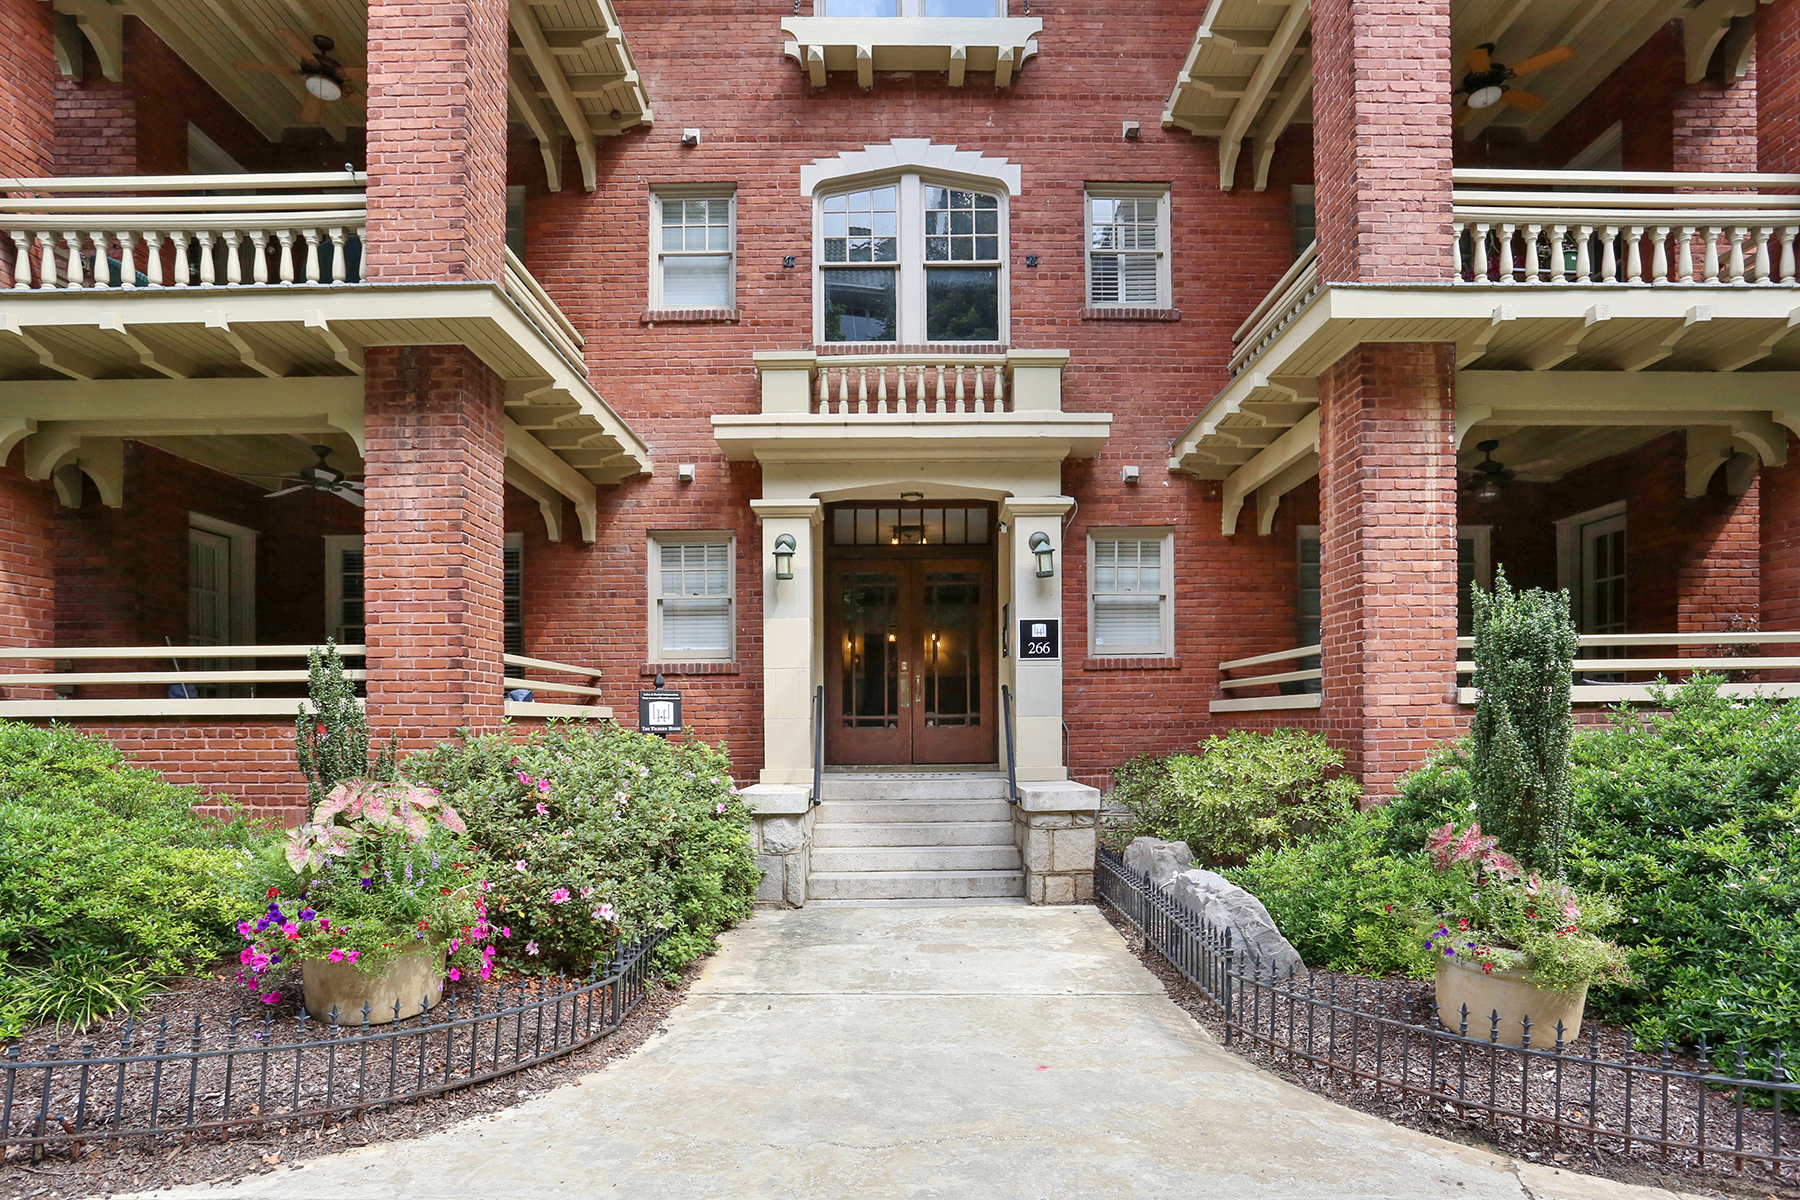 Condominium for Sale at Live directly on Piedmont Park in Historic Wilburn House 266 11th St 204 Atlanta, Georgia 30309 United States